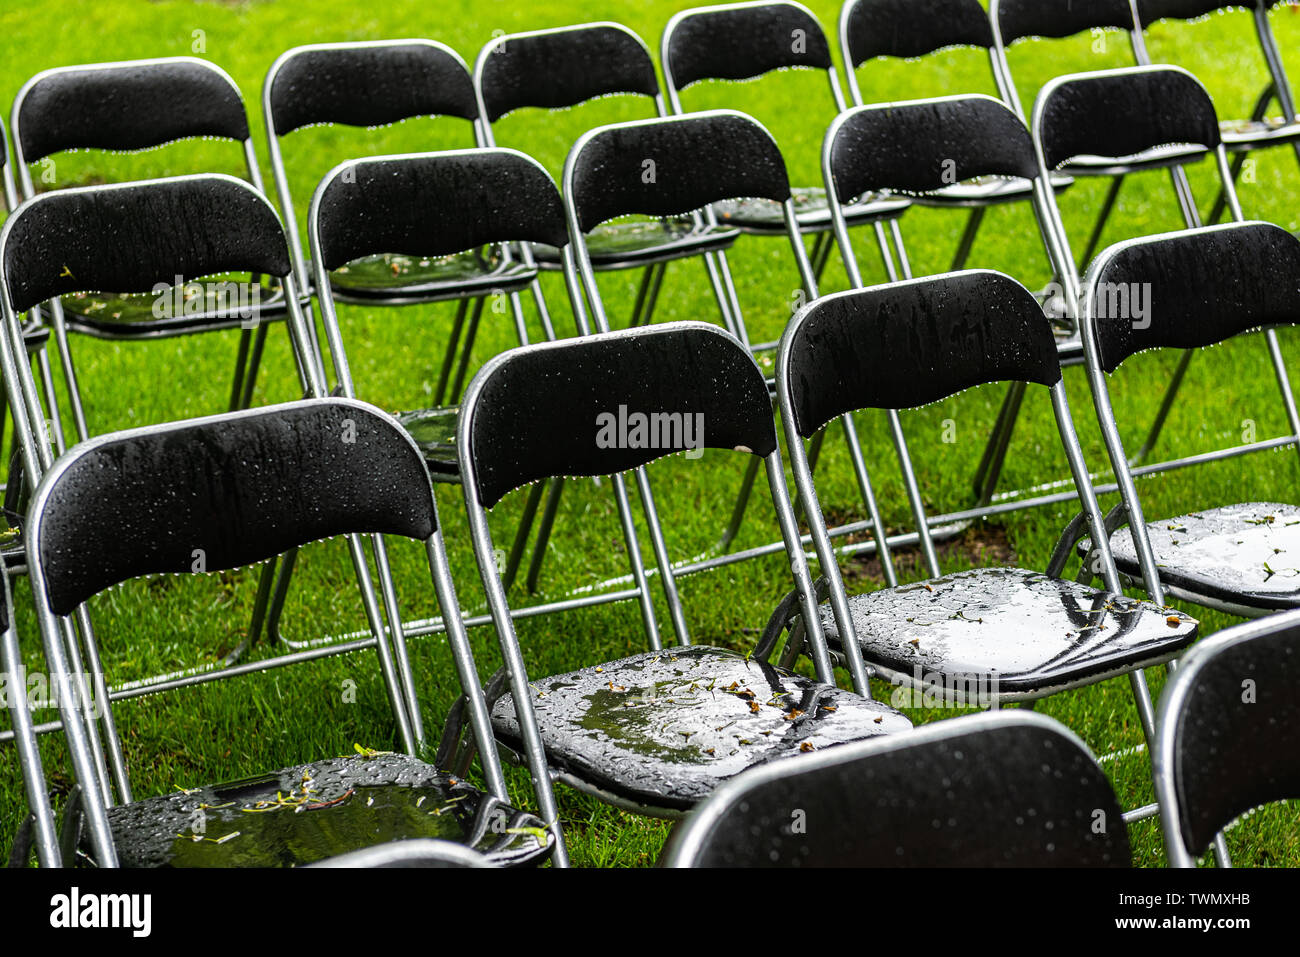 Black metal chairs stand outside in the park in the rain. Empty auditorium, green grass, trees and chairs with water drops. - Stock Image